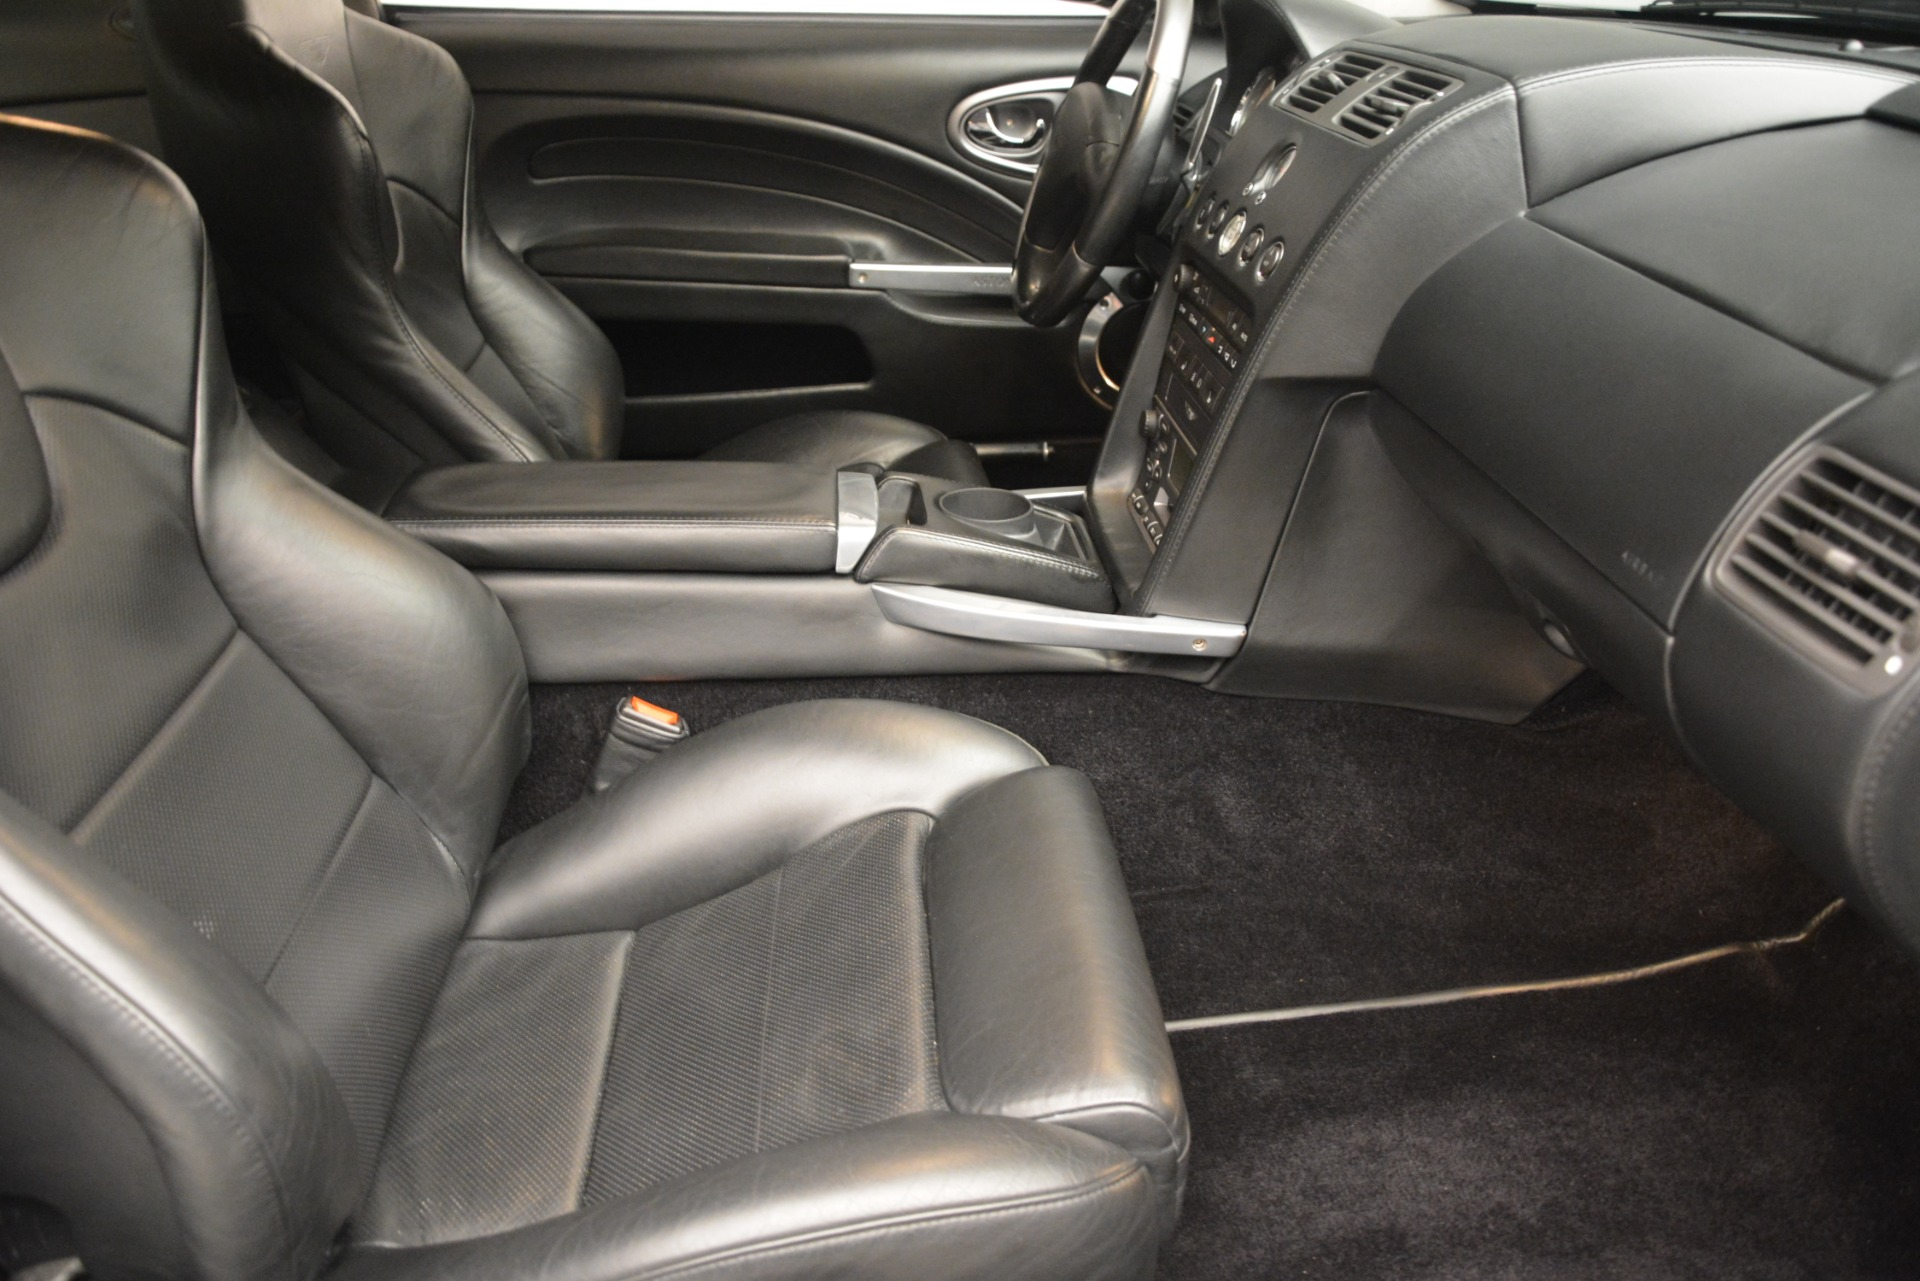 Used 2005 Aston Martin V12 Vanquish S Coupe For Sale In Westport, CT 3218_p21